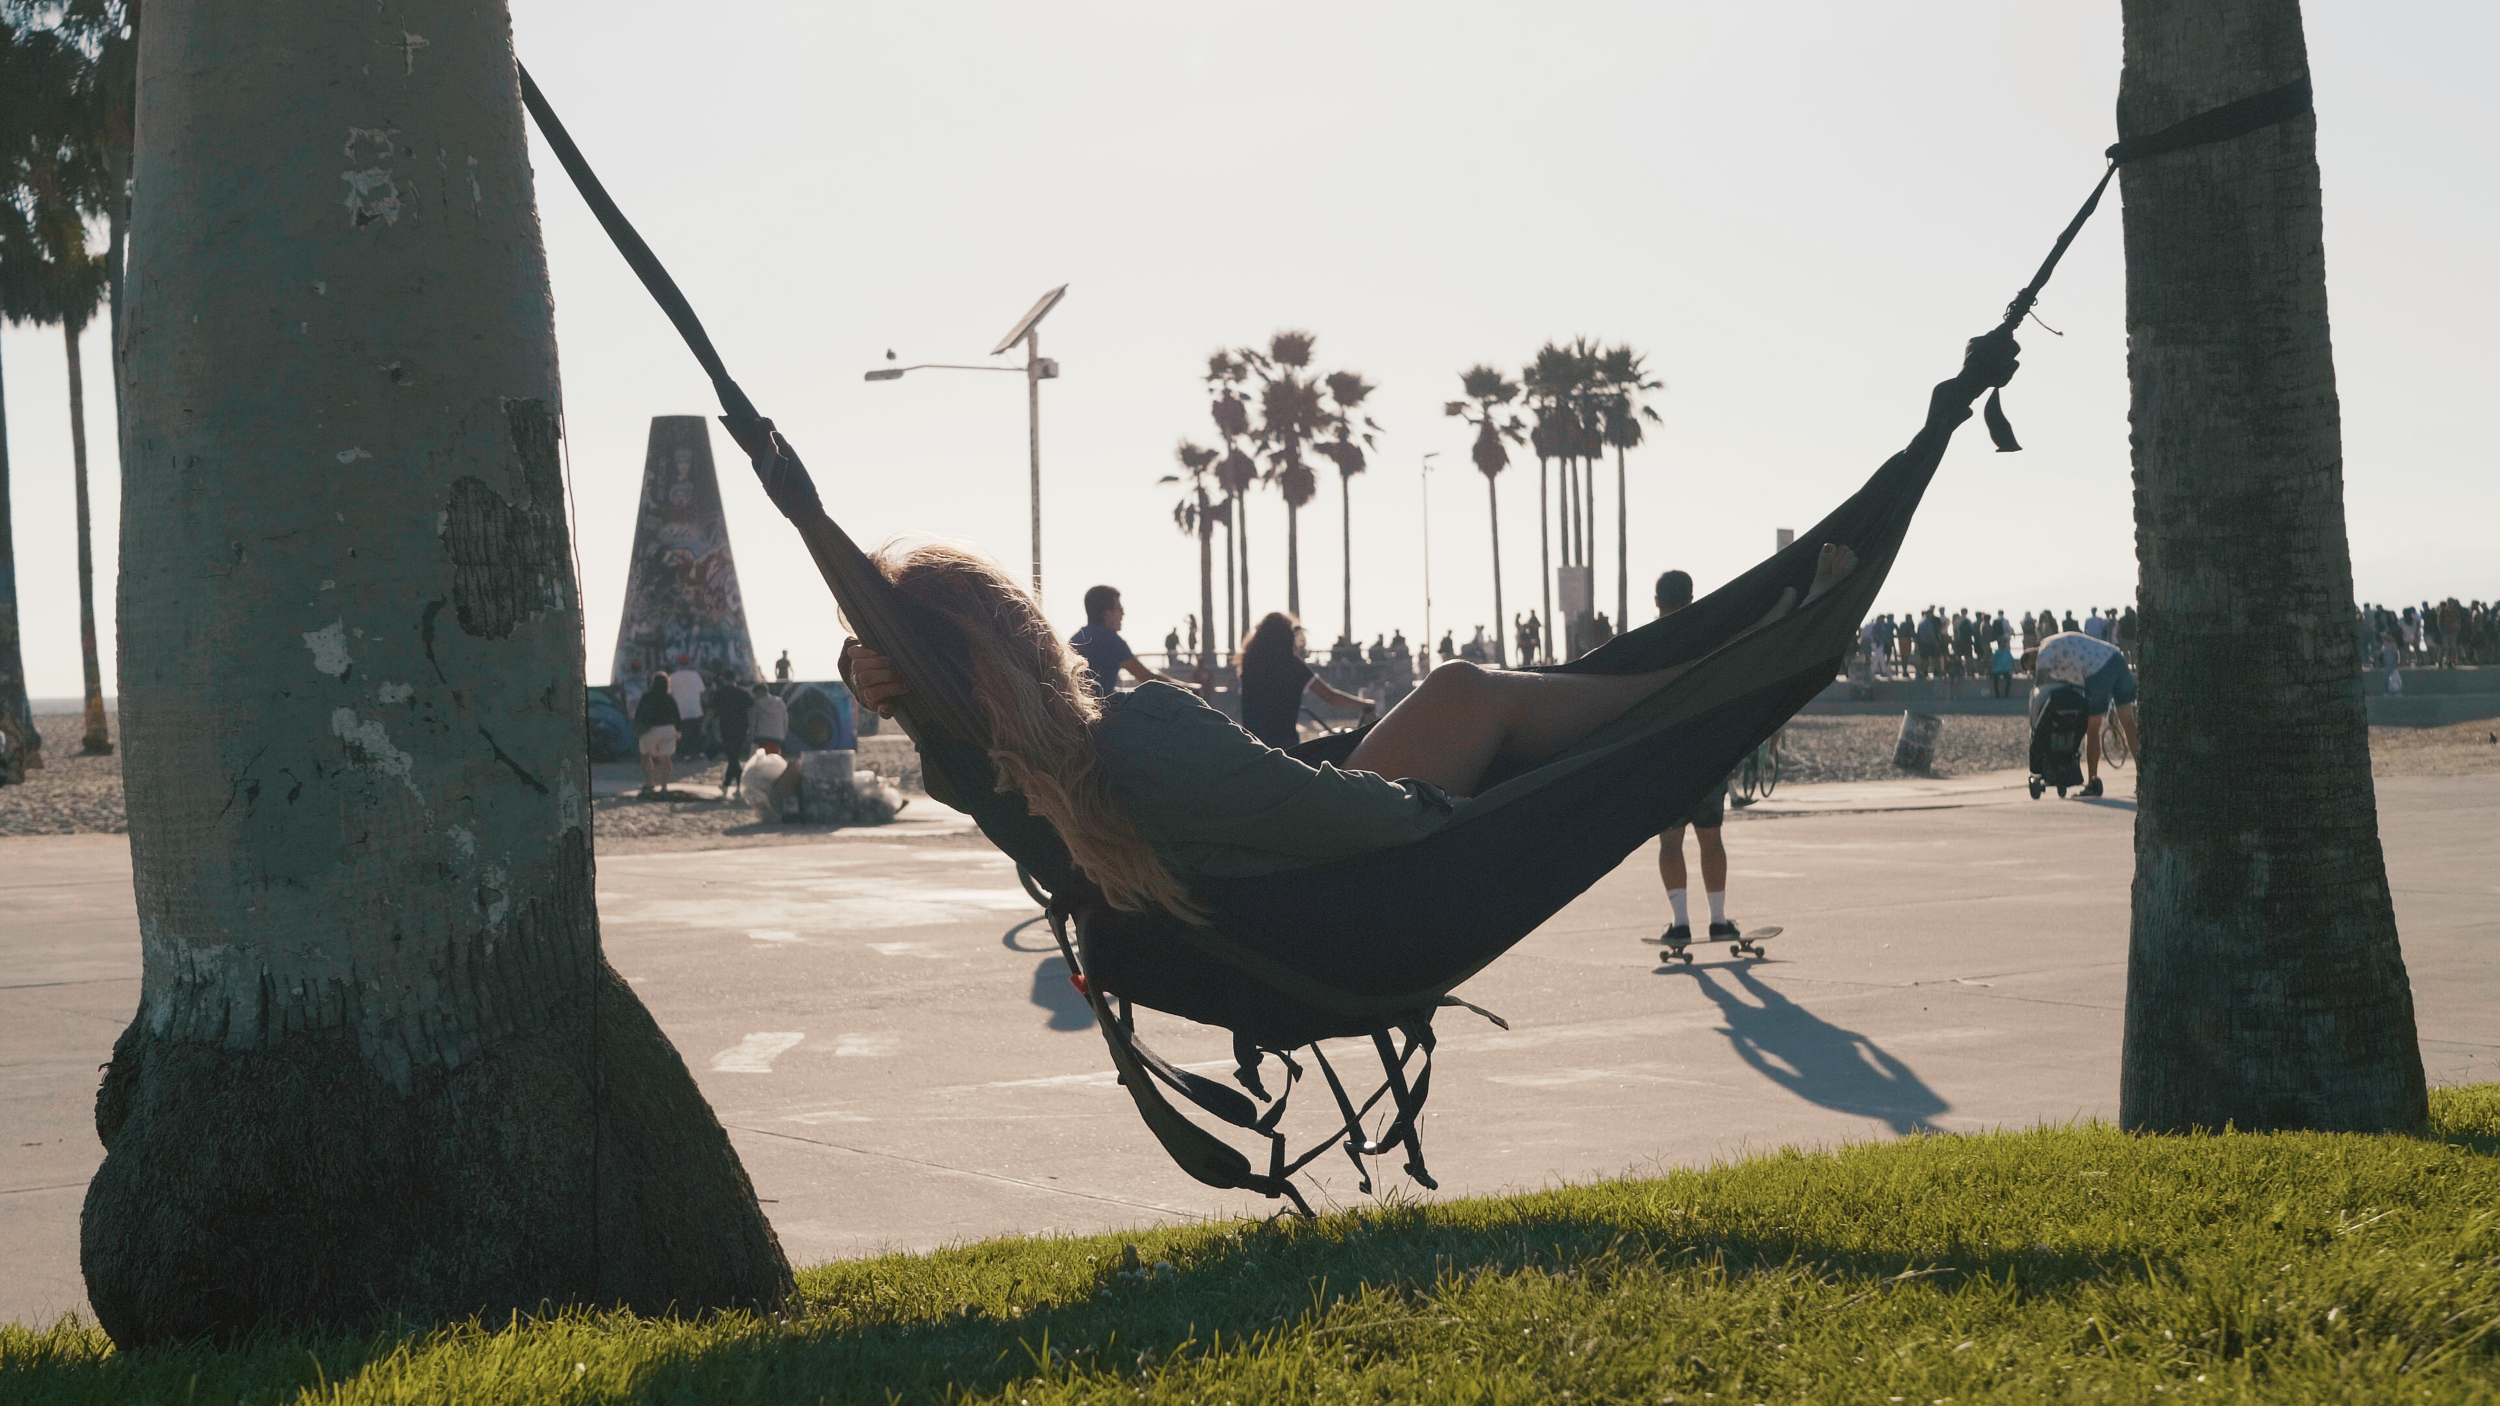 The Nomad Hammock follows an origami-style, foldable design.